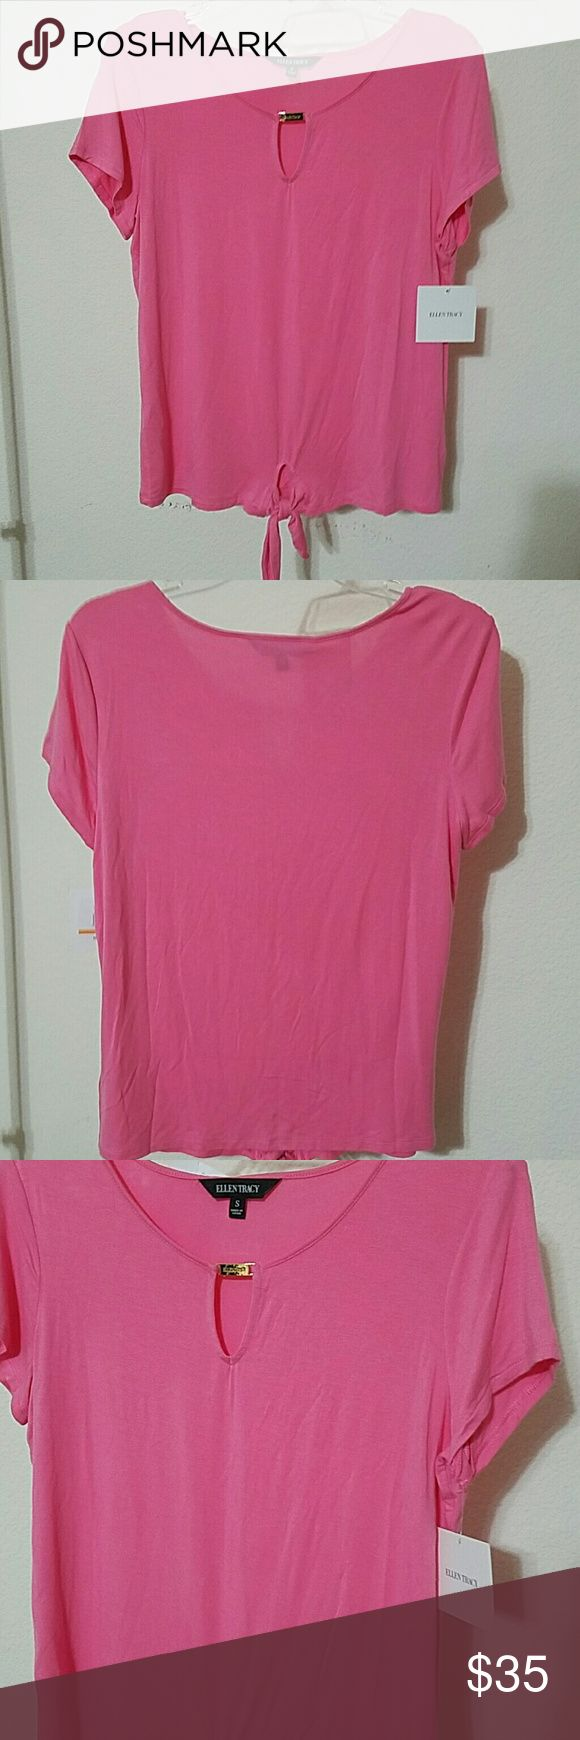 """Ellen Tracy Top Beautiful brand new with tag Ellen Tracy top. Really soft and comfortable. 96% viscose 4% elastane. No stains or damages. Azalea color. Approx L of top 23 1/2"""". Armpit to armpit approx without stretching 19 1/2"""". Ellen Tracy Tops"""